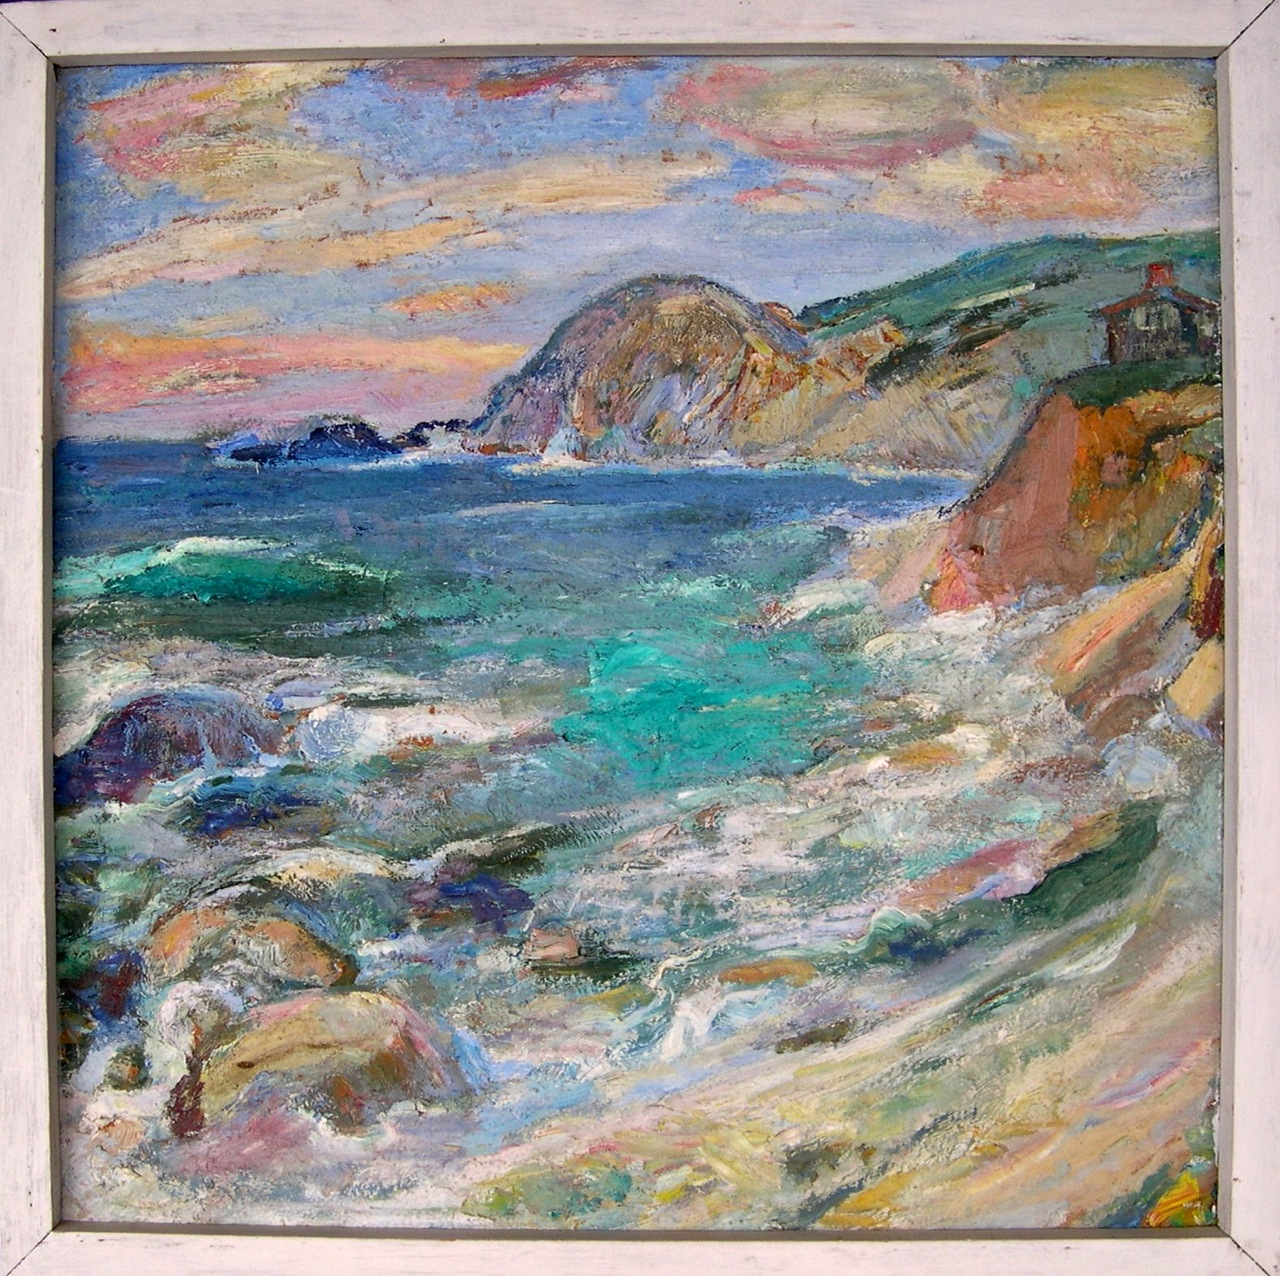 A painting of the Big Sur Coast by my great-grandmother, Jennie Vennerstrom Cannon